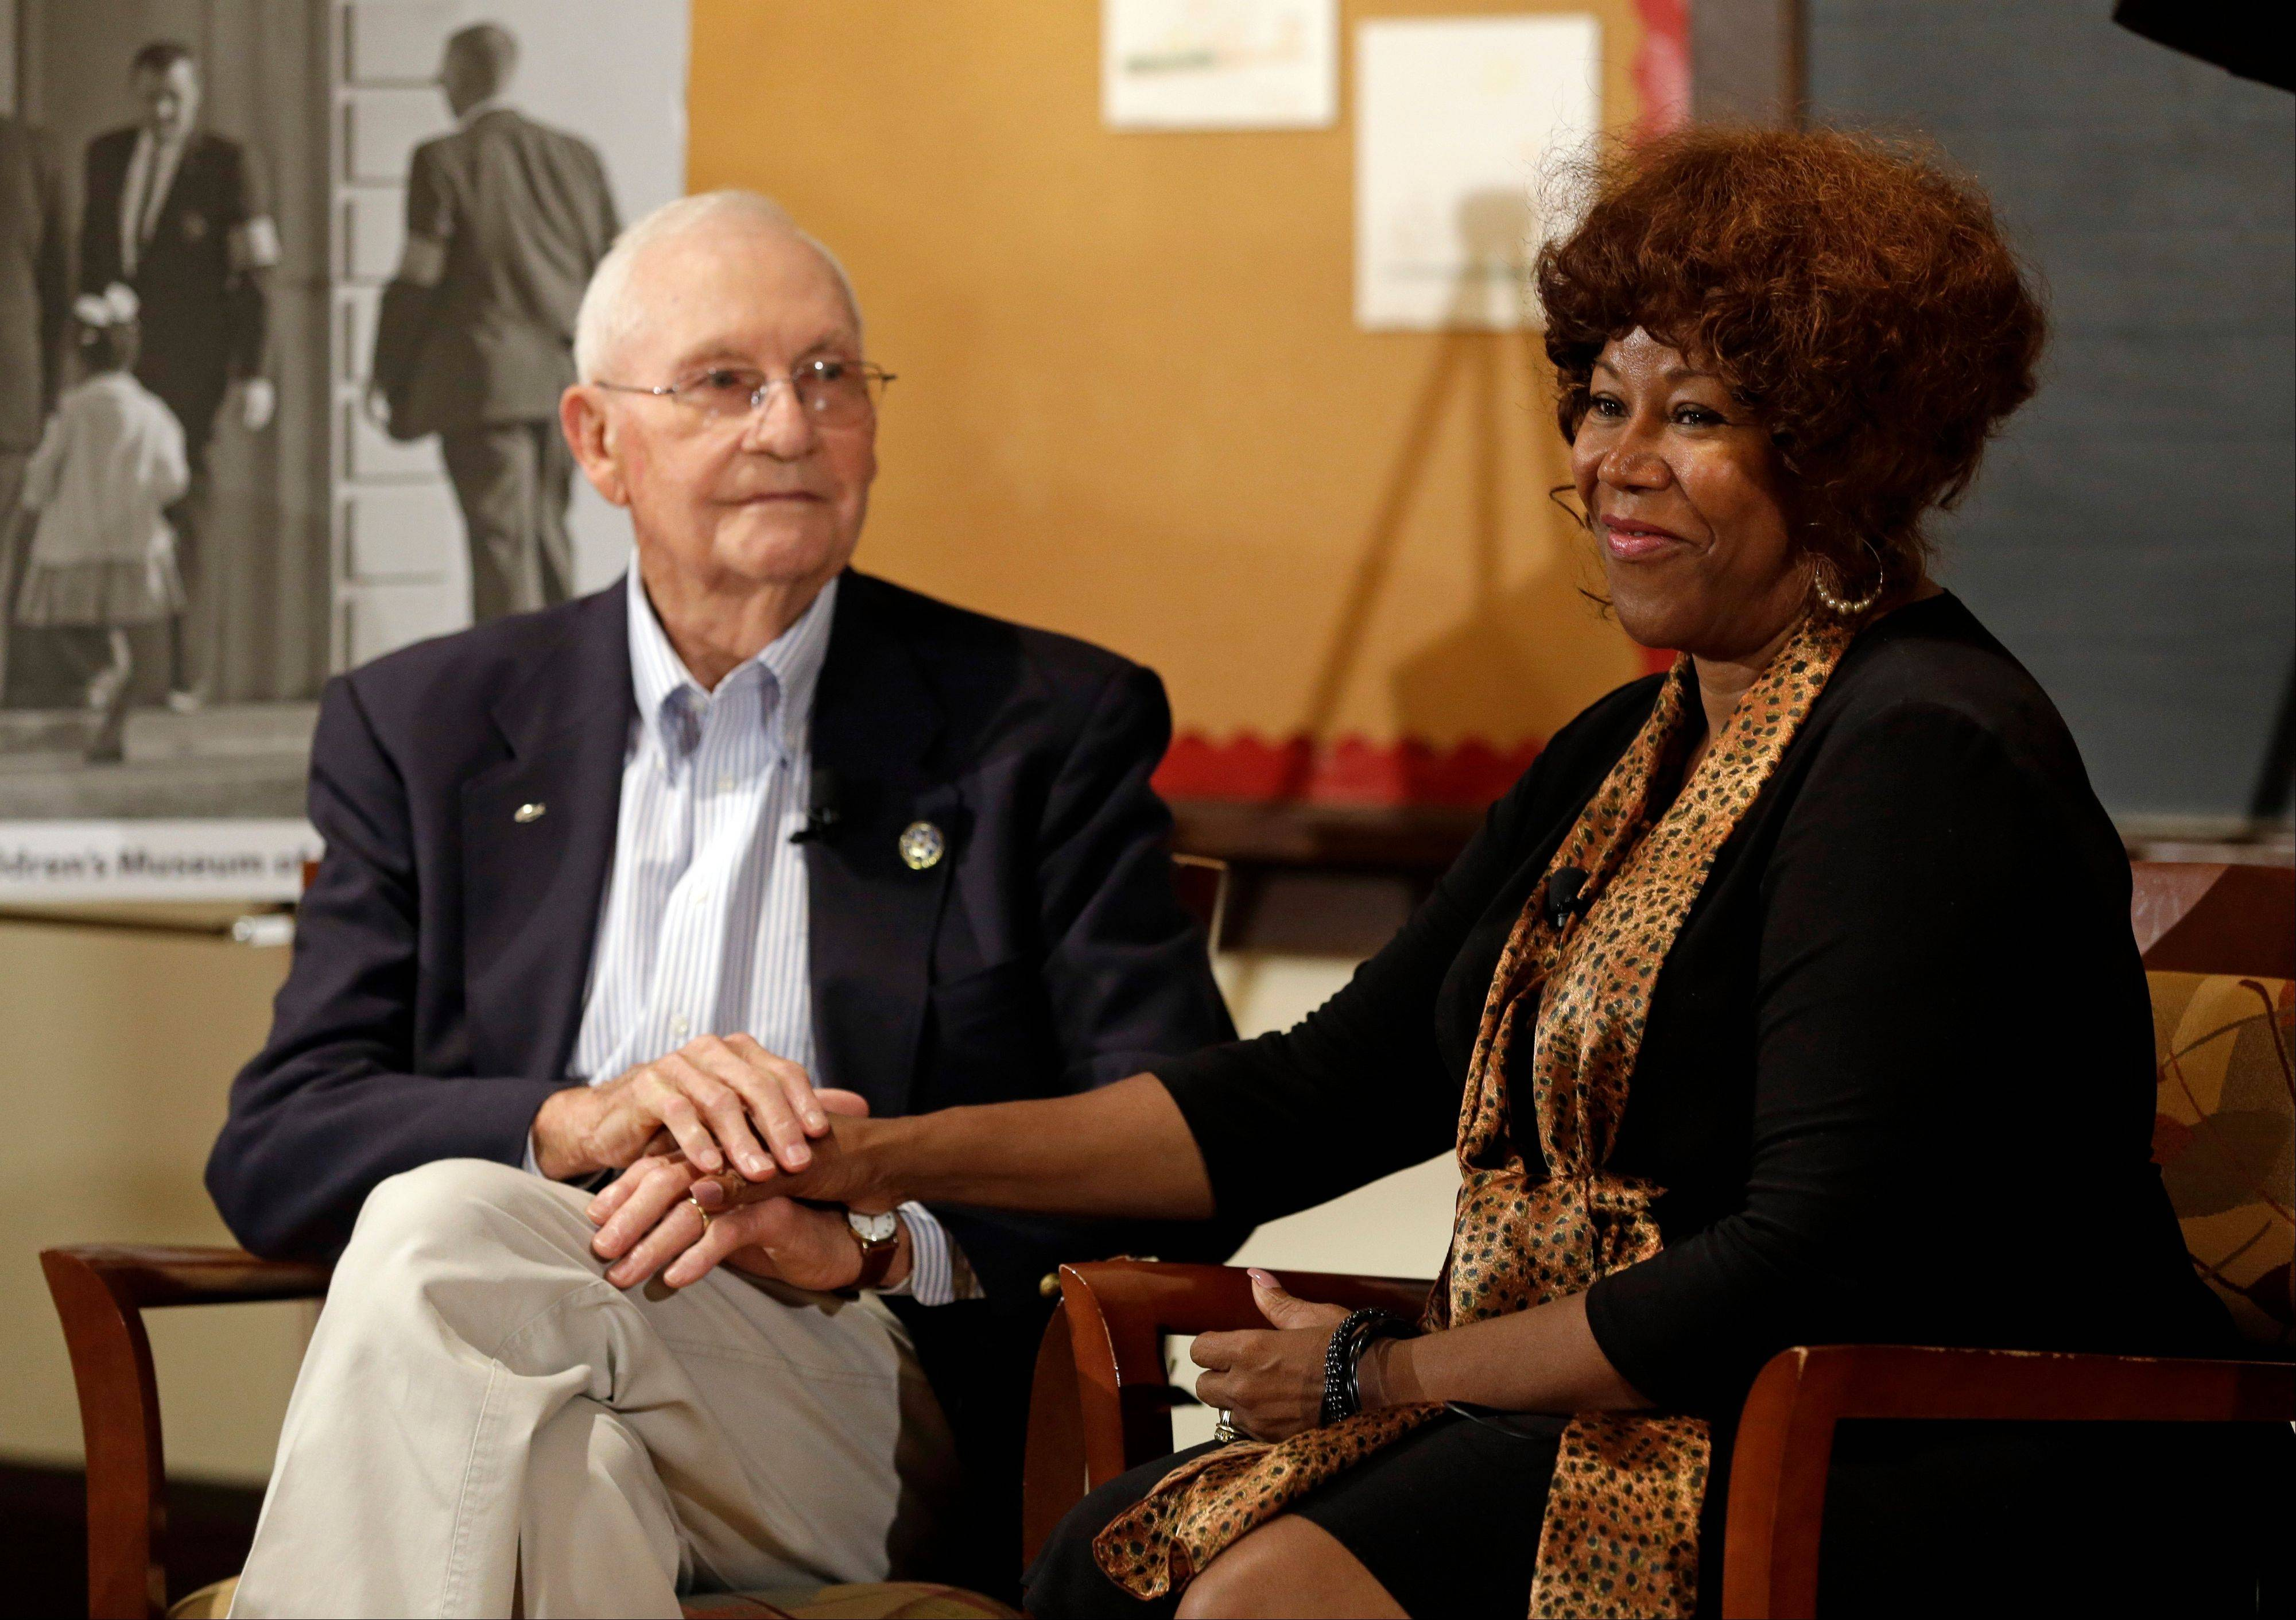 Ruby Bridges, right, who integrated Louisiana schools in 1960 under escort from U.S. Marshals, meets with Charles Burks, 91, who was one of those marshals. The two filmed a video Thursday to share their experience with children.